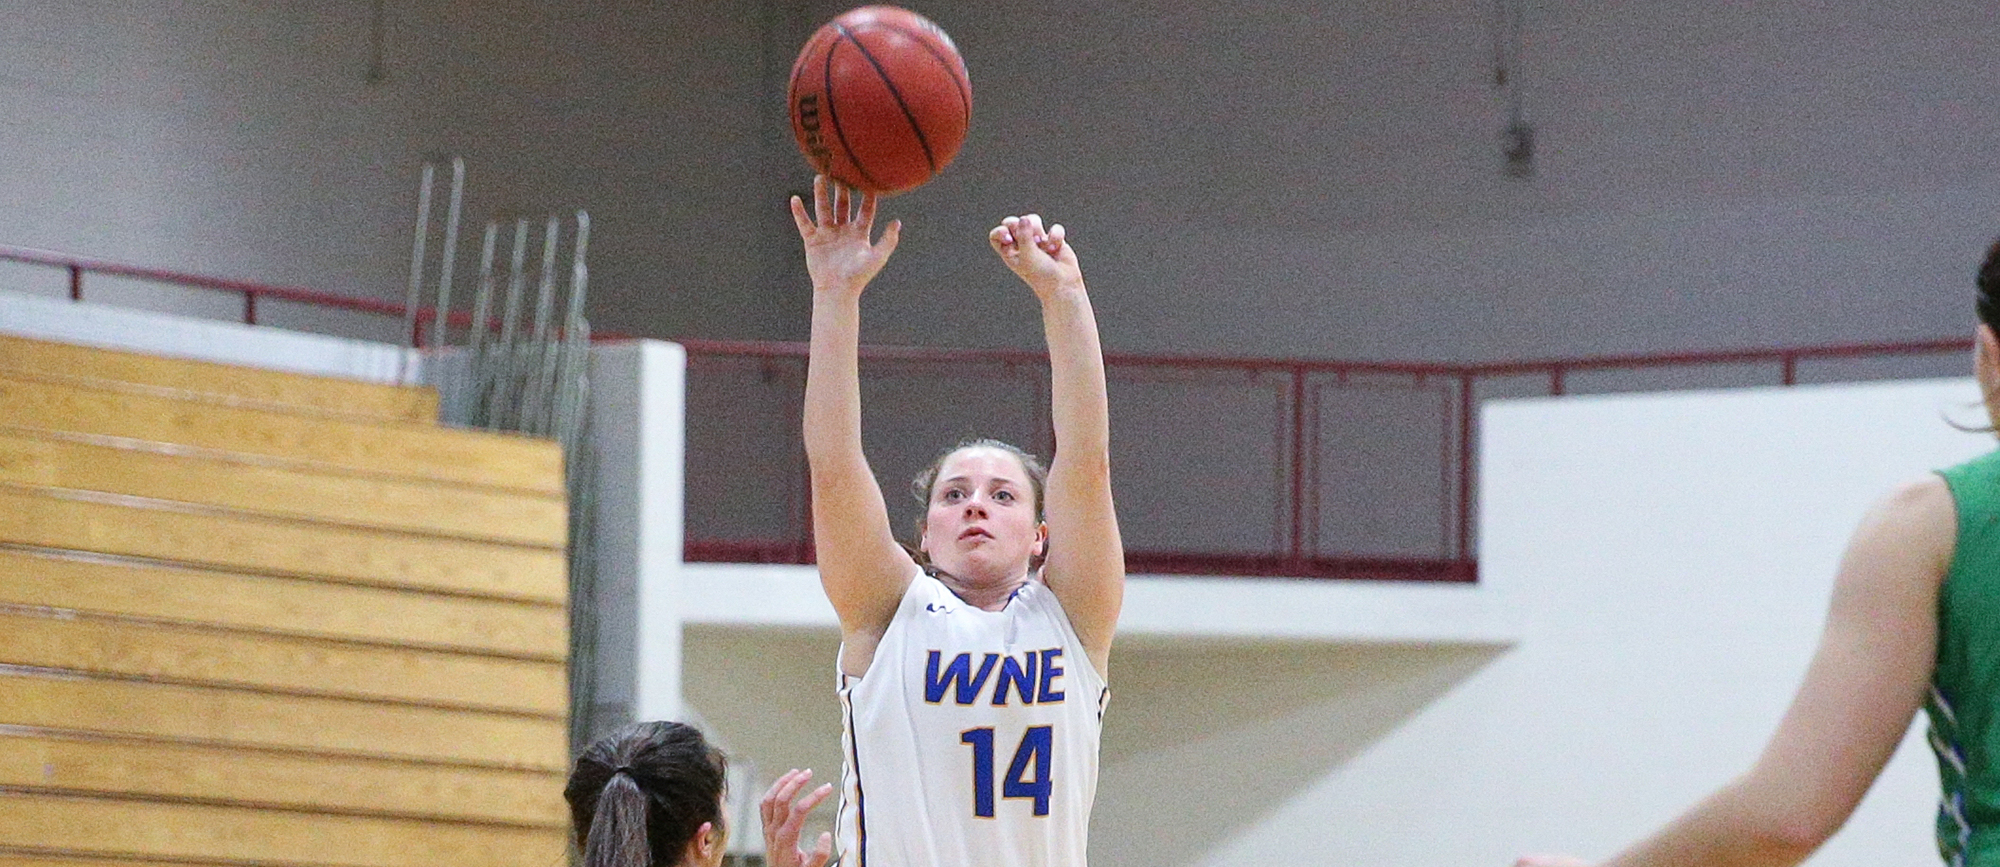 Senior guard Dorothy O'Neill scored a season-high 20 points in Western New England's 75-72 victory at Emerson on Saturday (photo by Chris Marion).